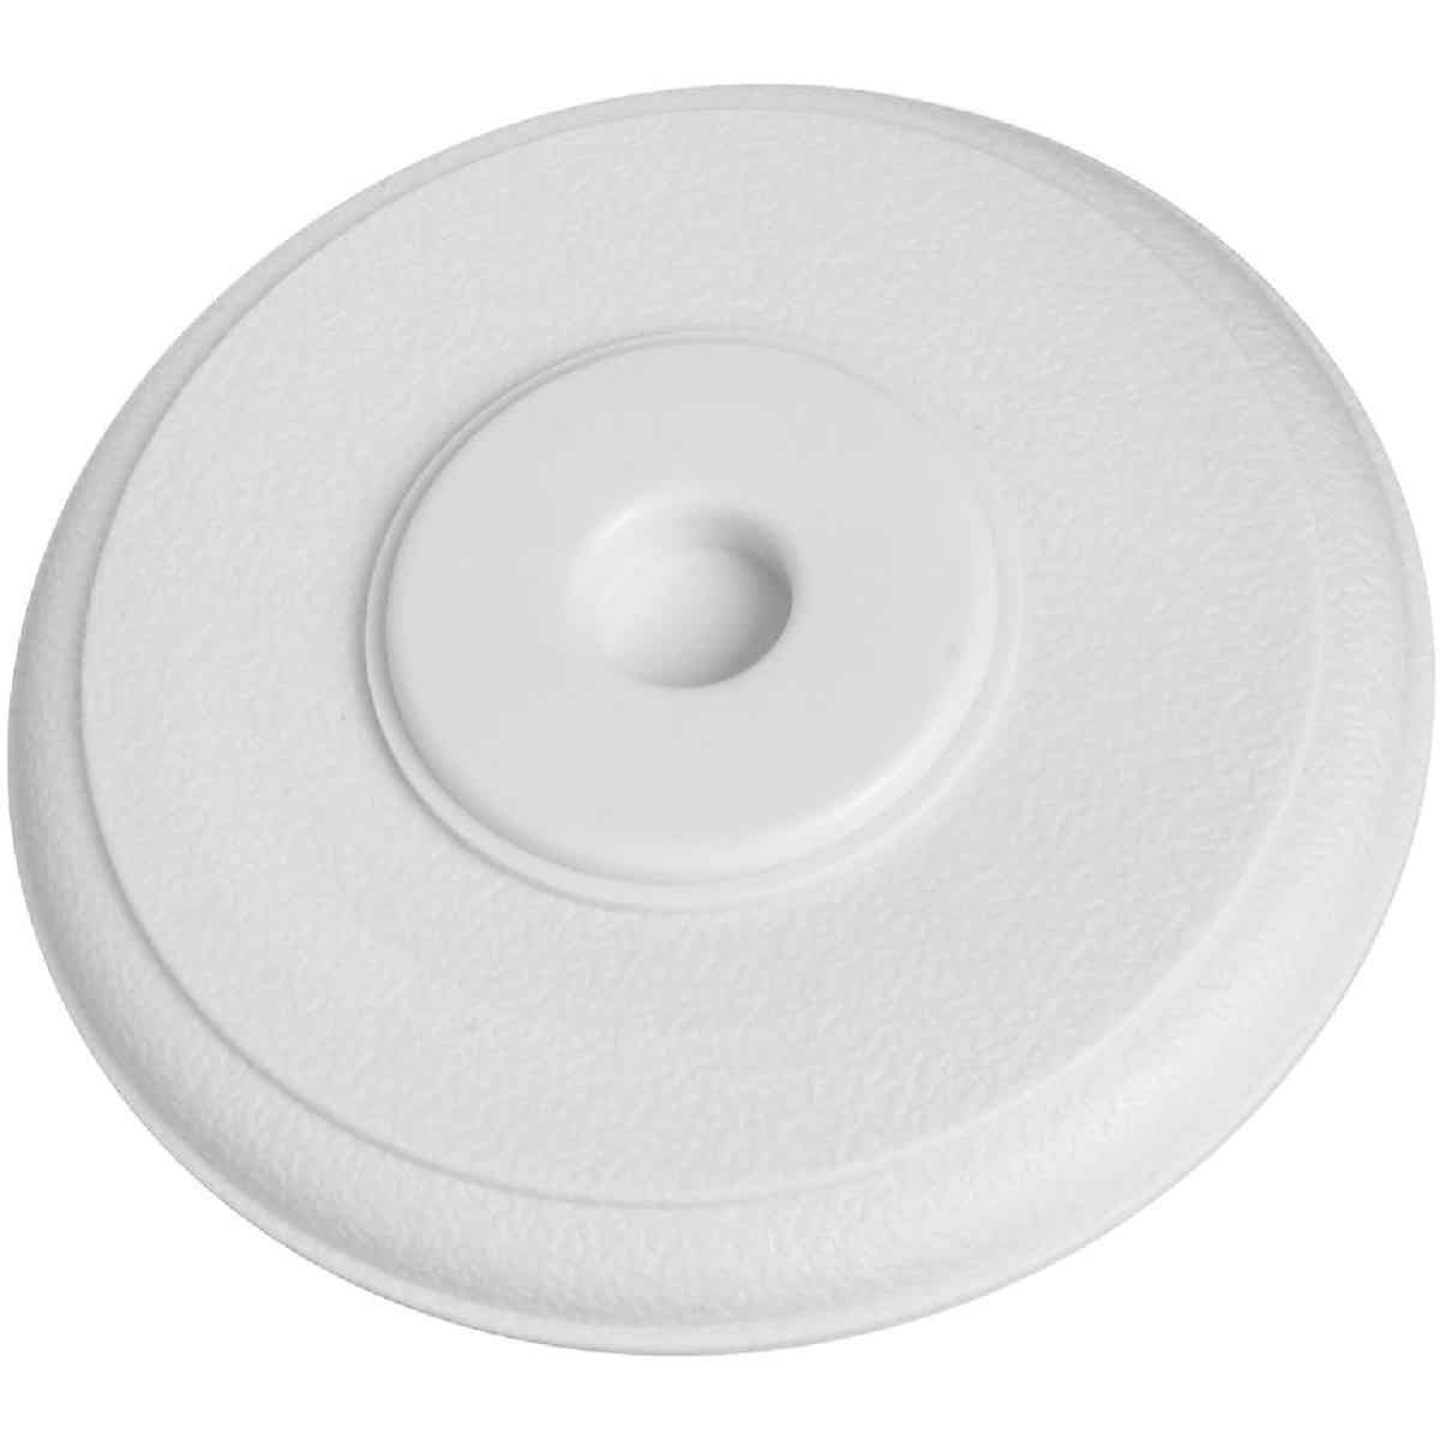 National 336 5 In. Almond Softstop Cover-Up Wall Door Stop Image 1